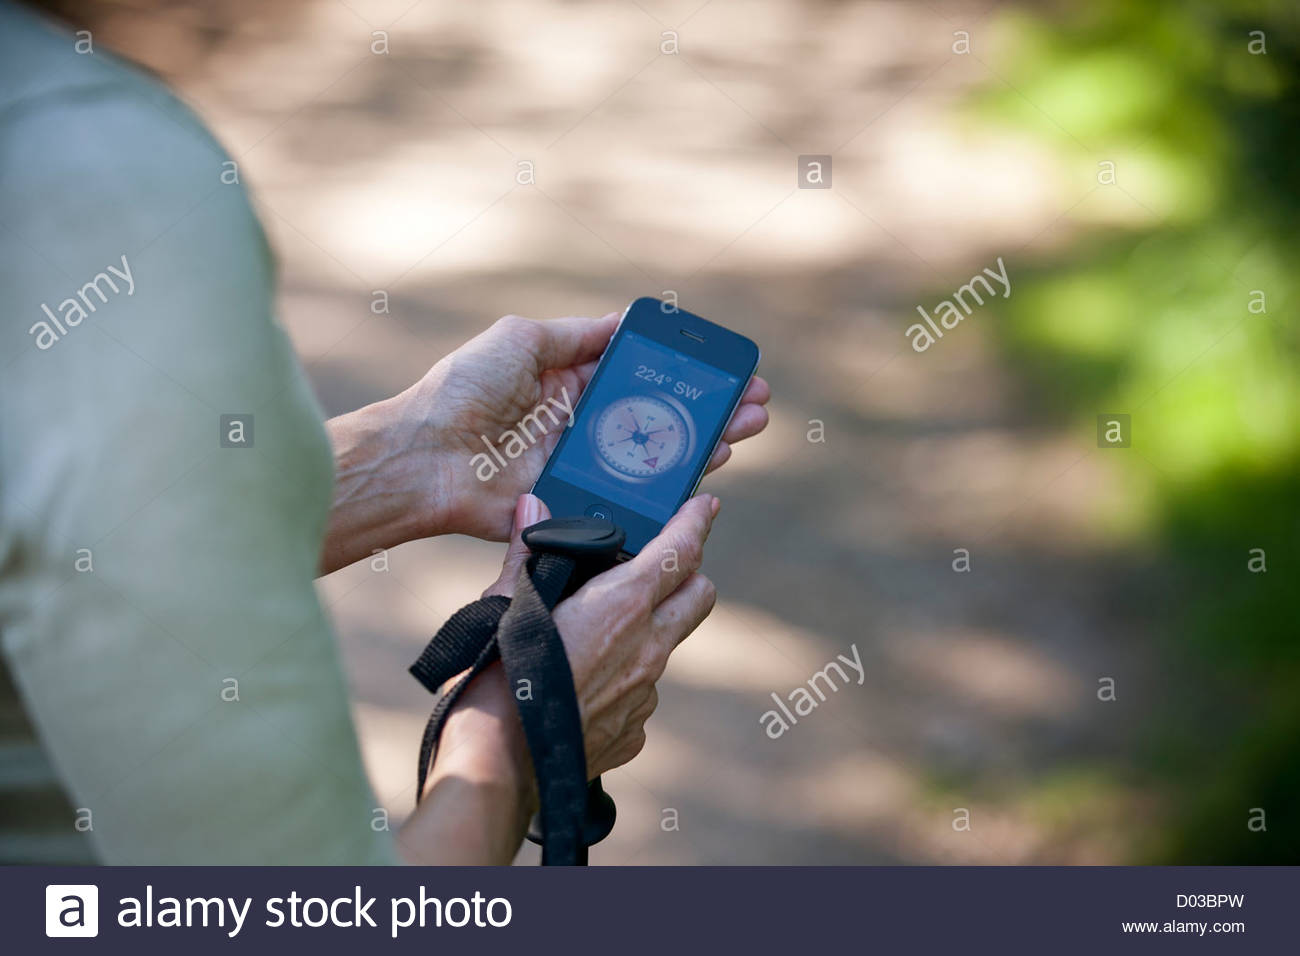 A woman holding a smartphone with a compass application, close uo - Stock Image